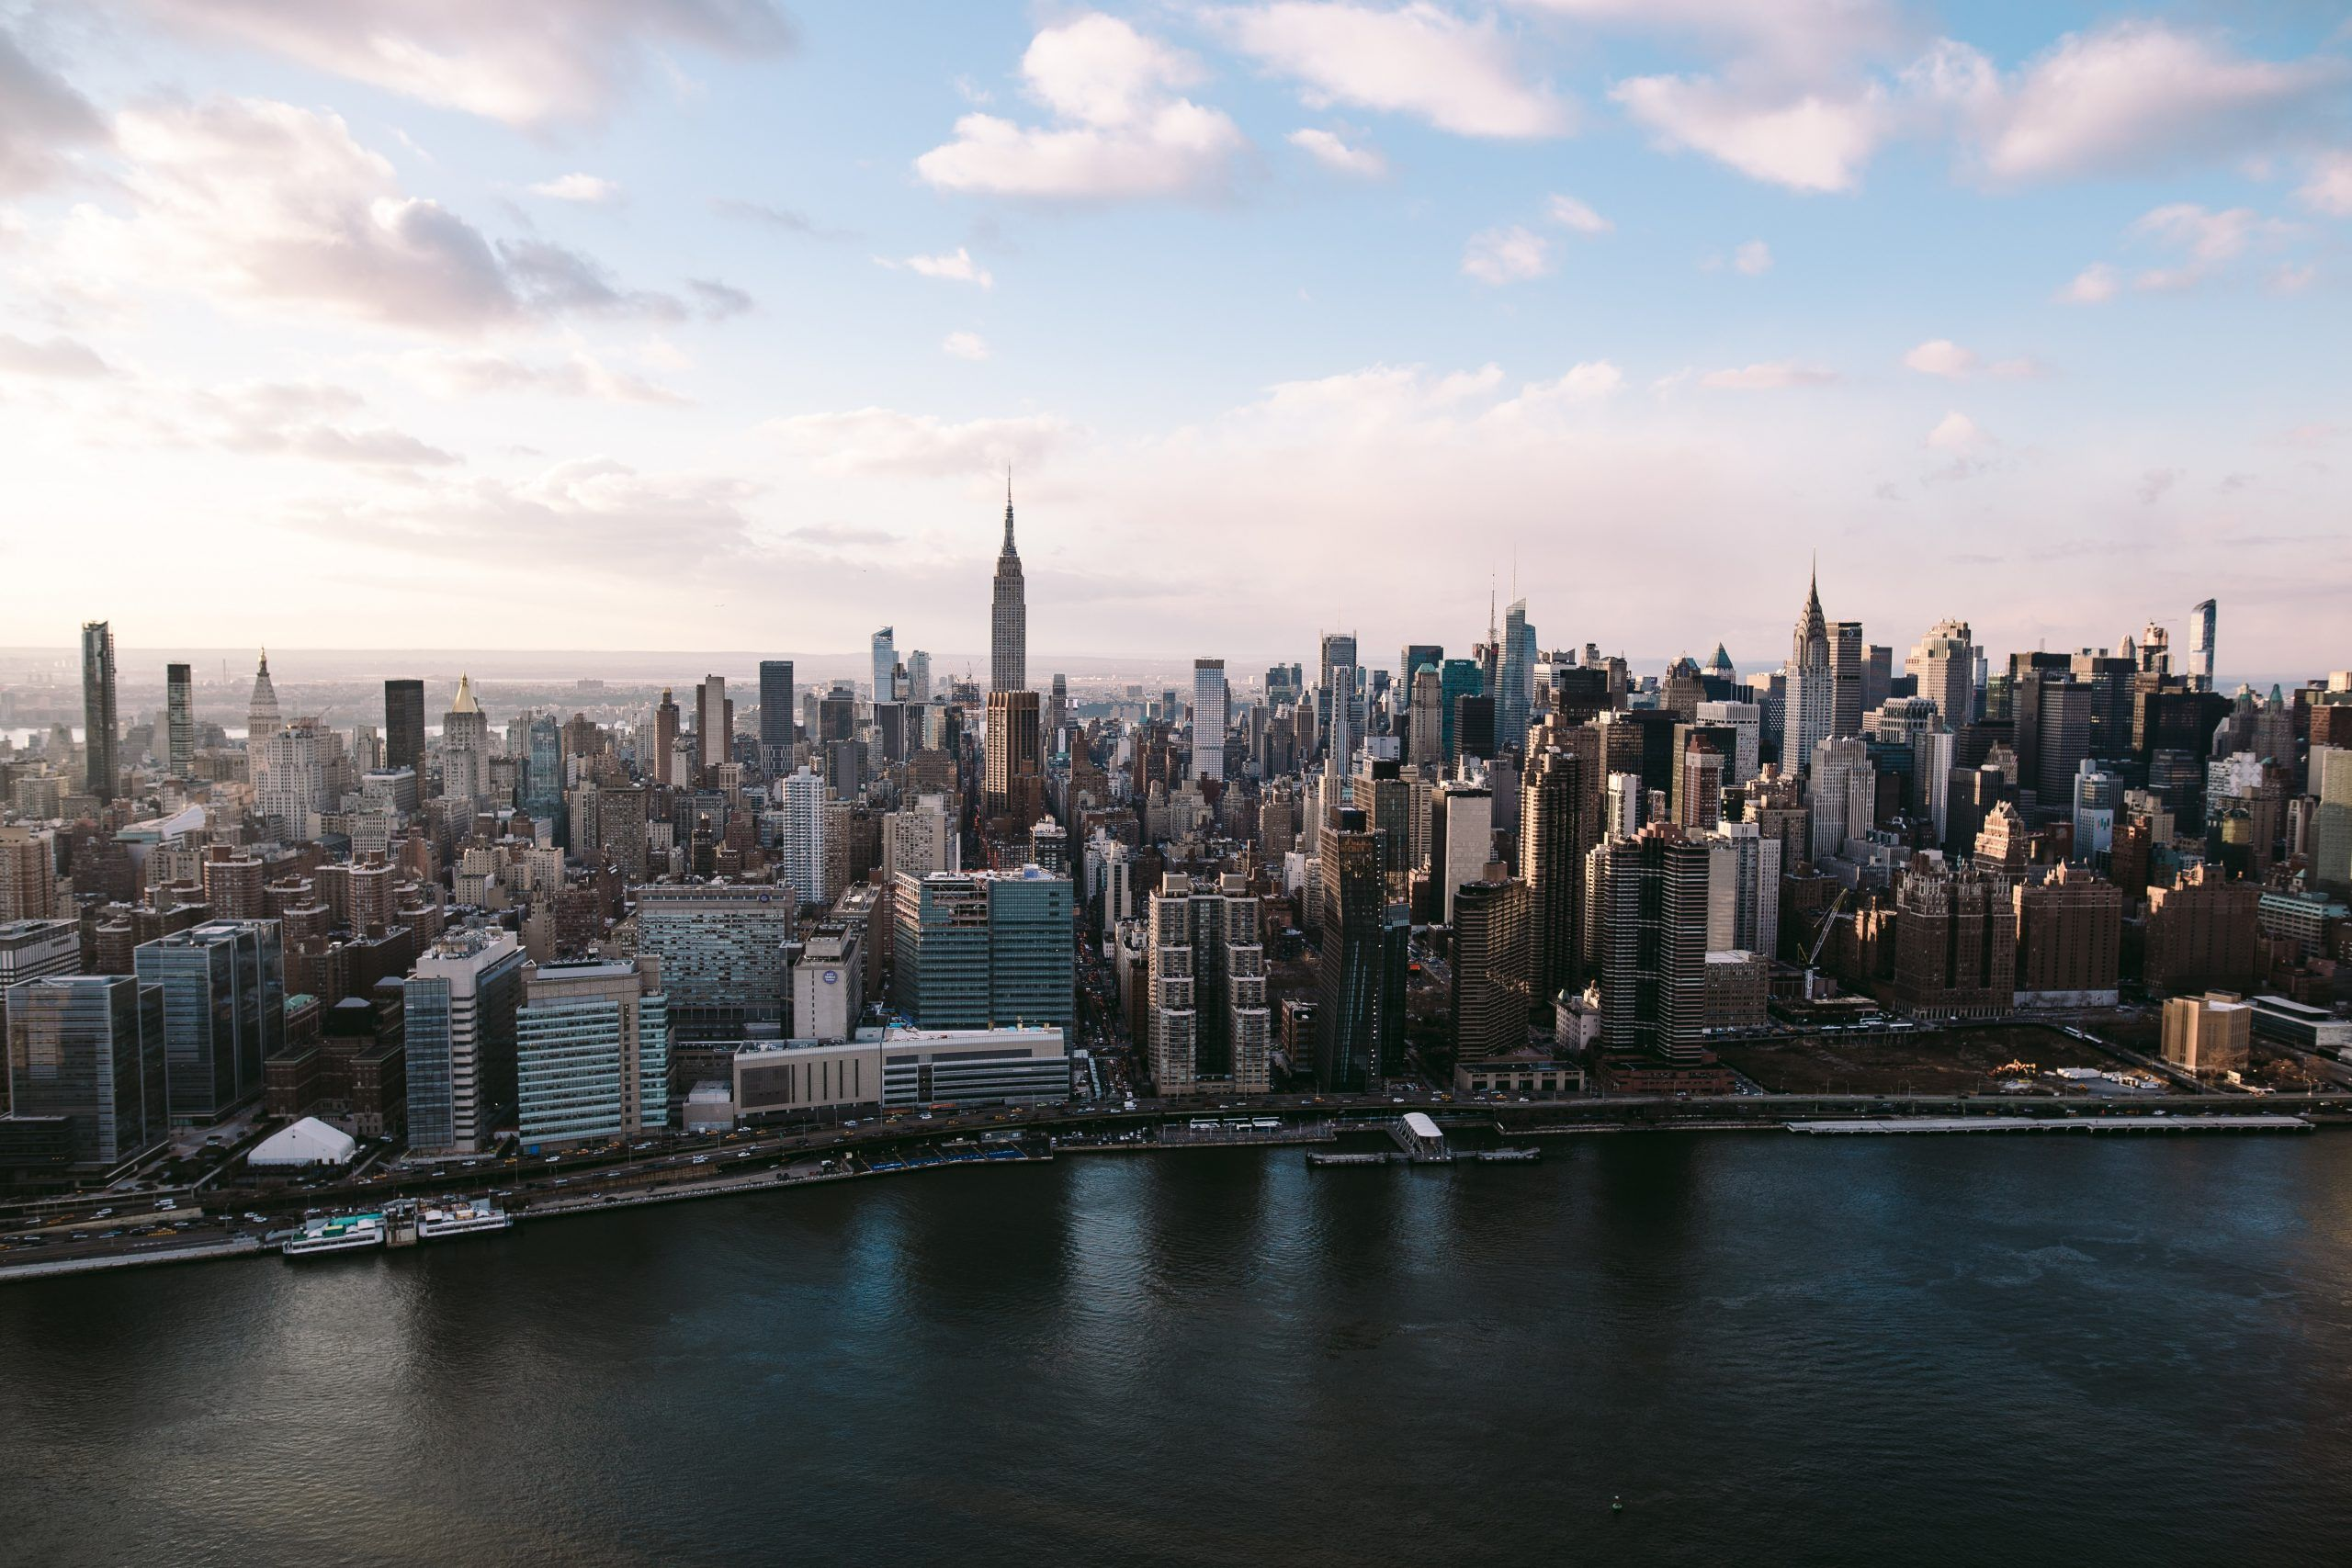 The view of the Manhattan Skyline from a helicopter